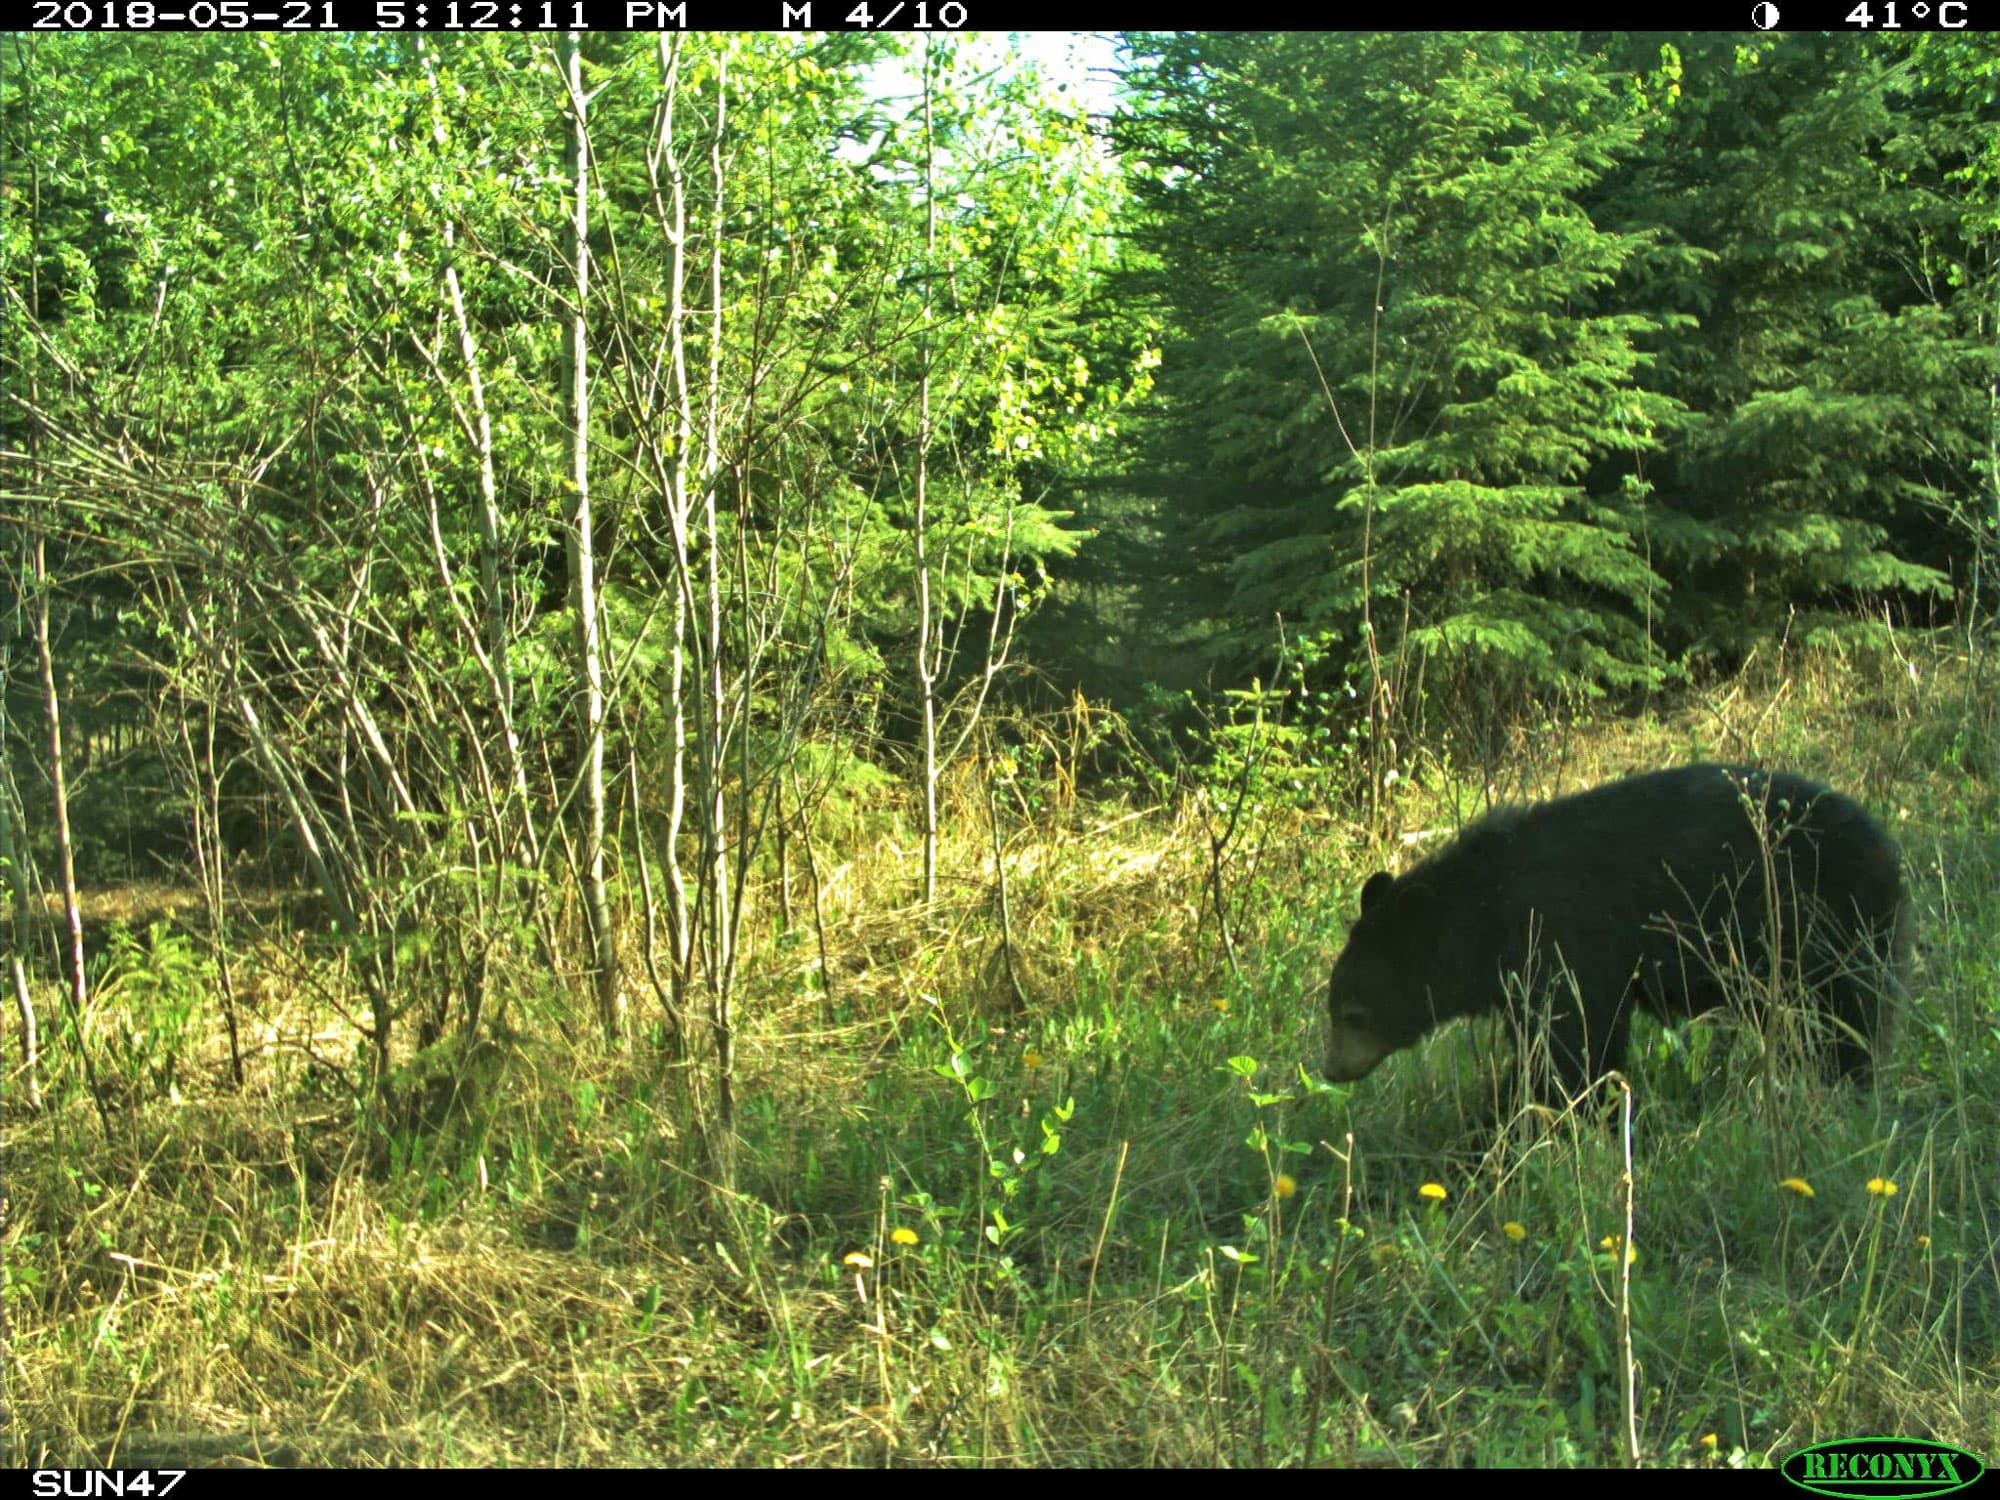 Black bear recorded as part of the photographic monitoring program.